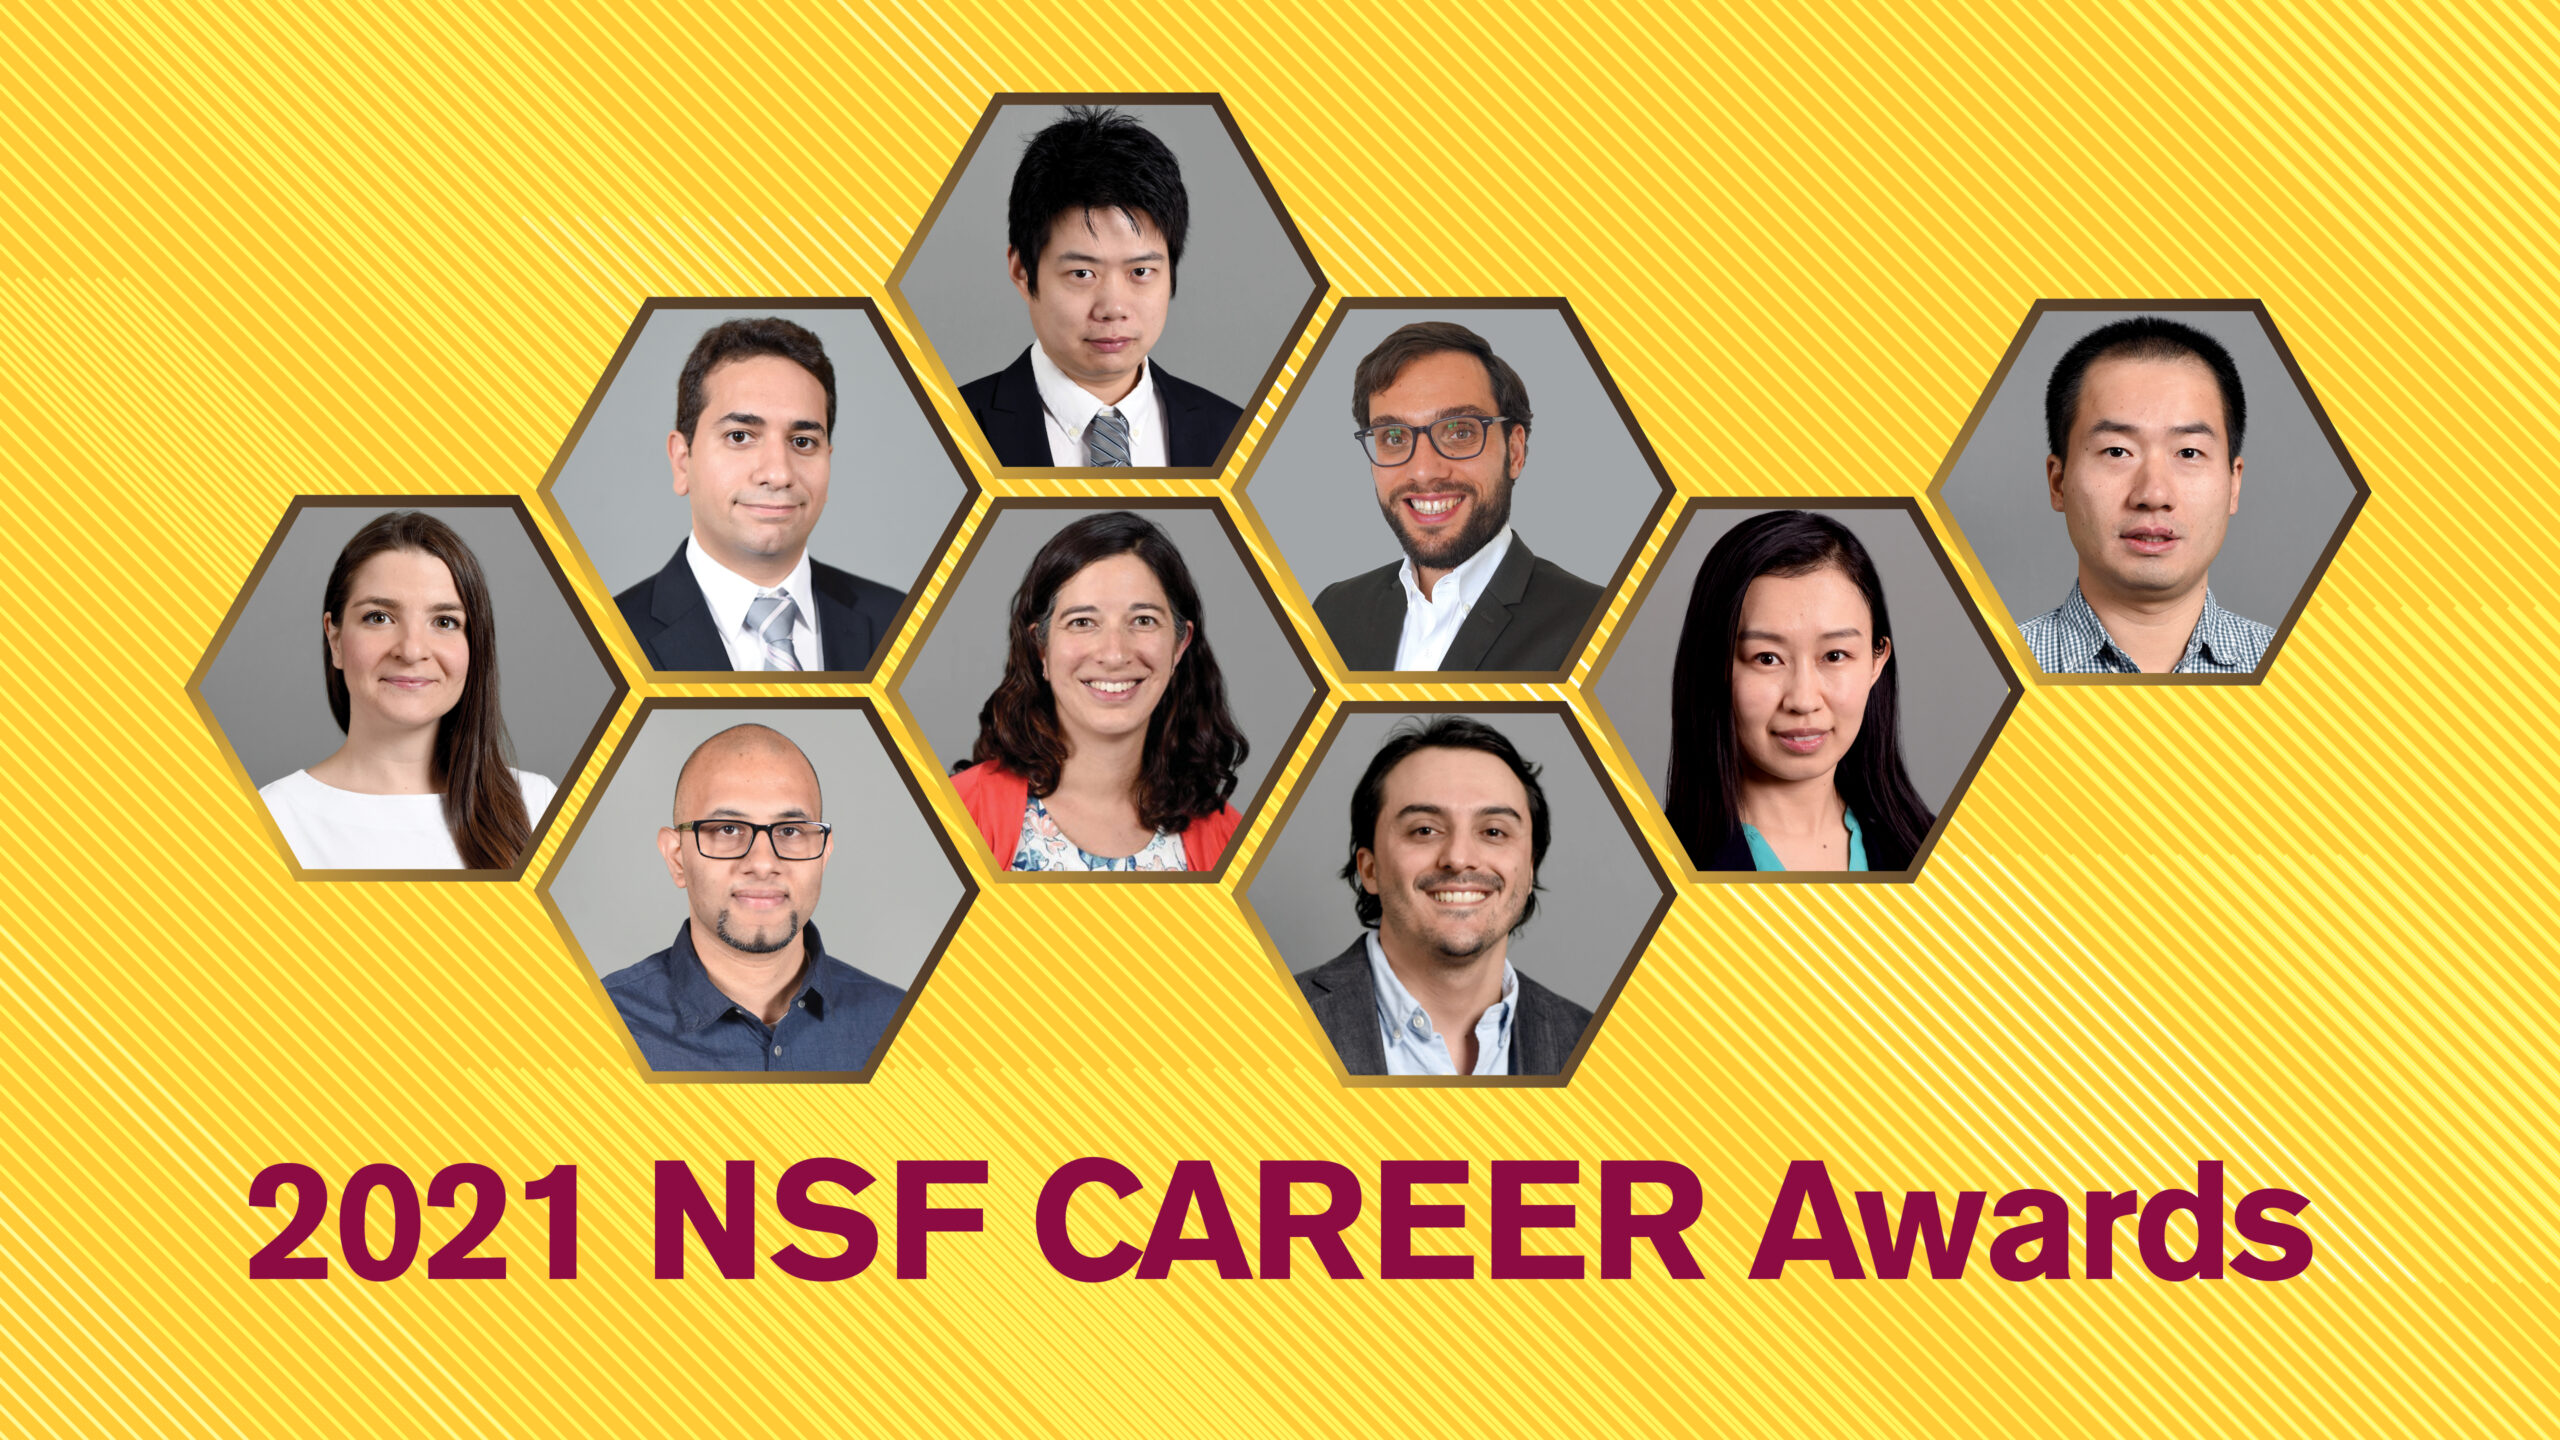 graphic with nine photos of faculty members and 2021 NSF CAREER Awards